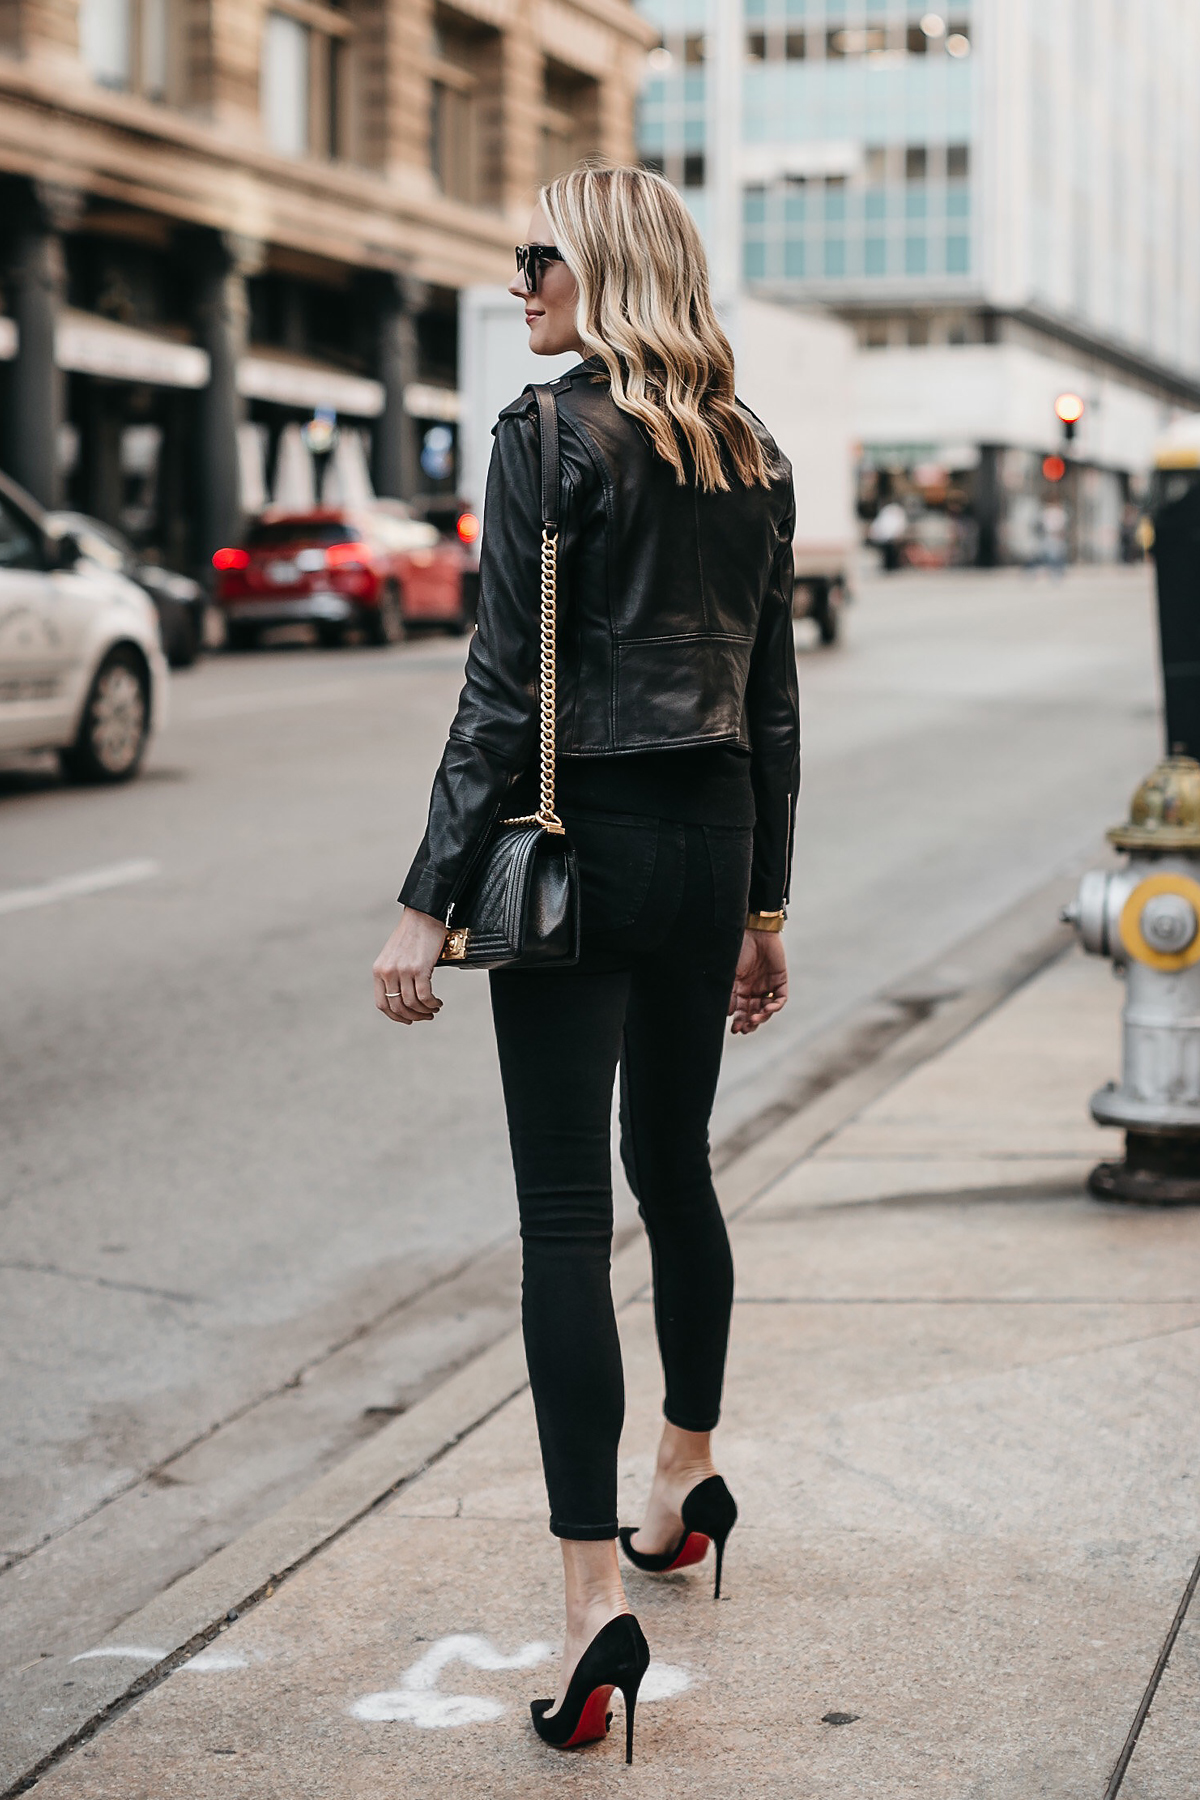 Blonde Woman Wearing Club Monaco Black Leather Jacket Black Skinny Jeans Christian Louboutin Black Pumps Fashion Jackson Dallas Blogger Fashion Blogger Street Style